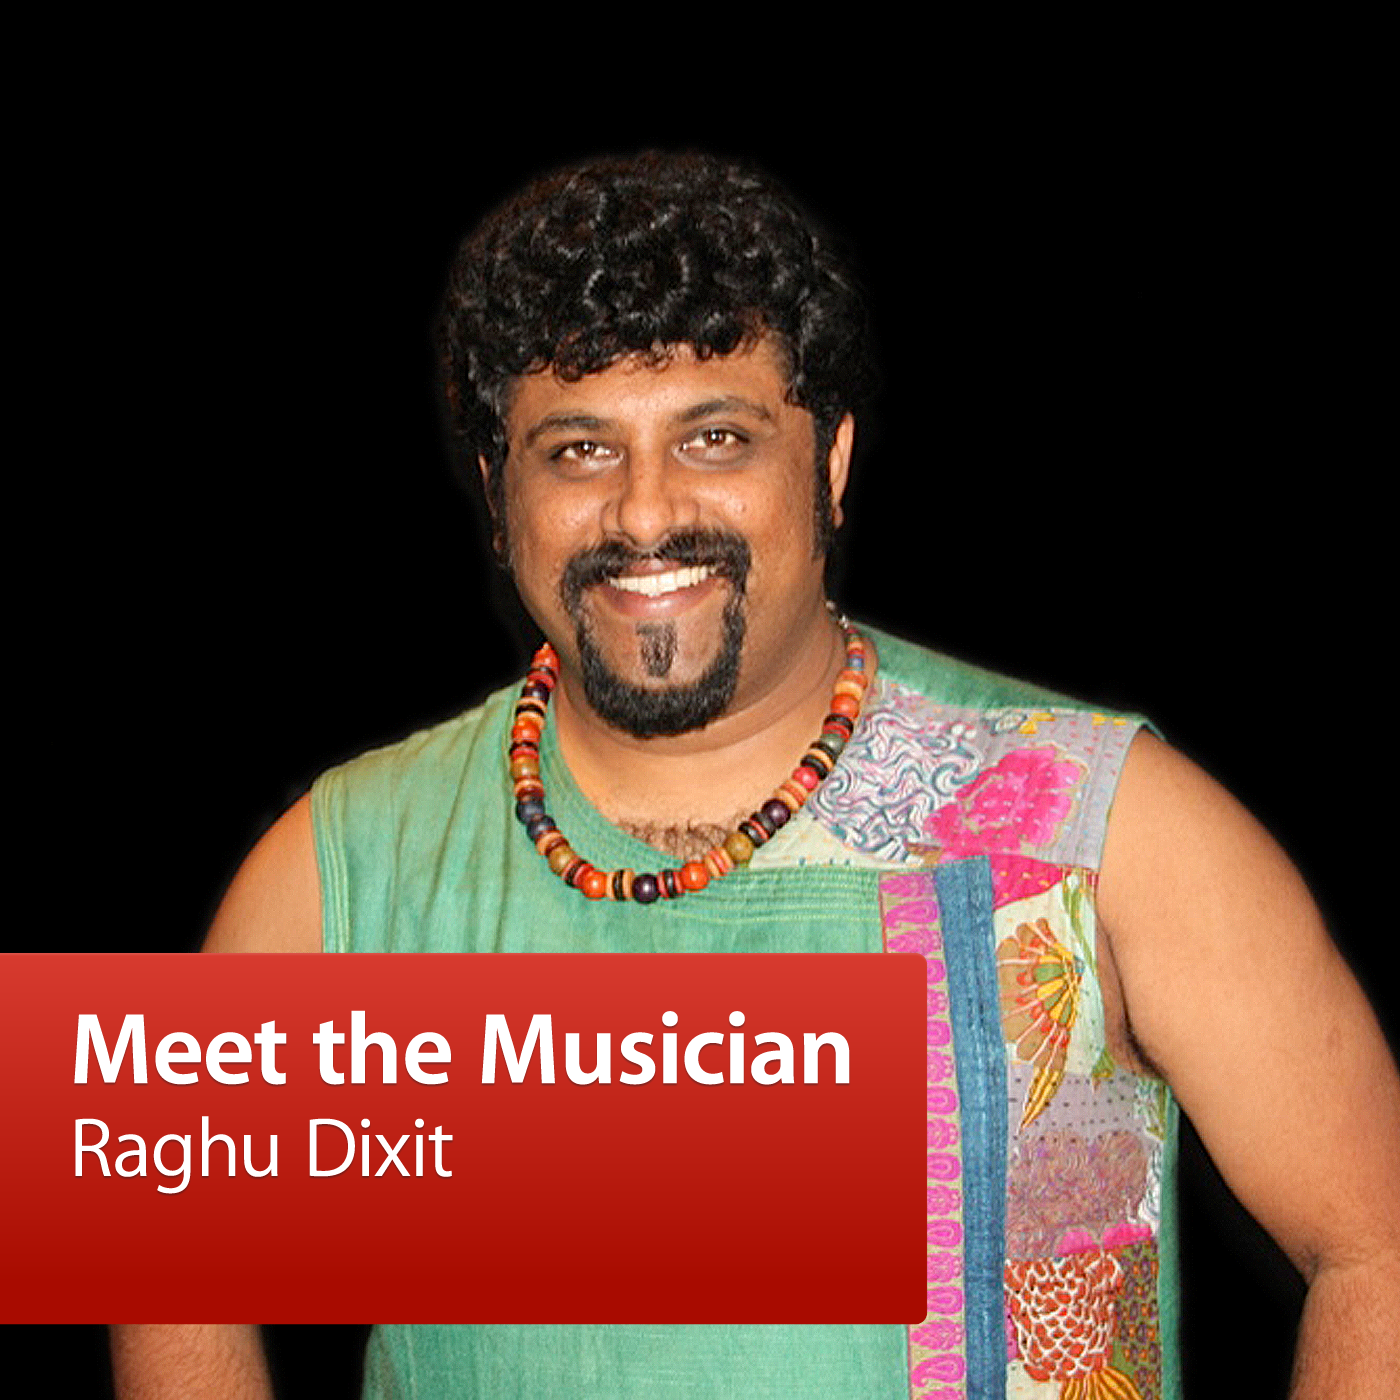 Raghu Dixit: Meet the Musician